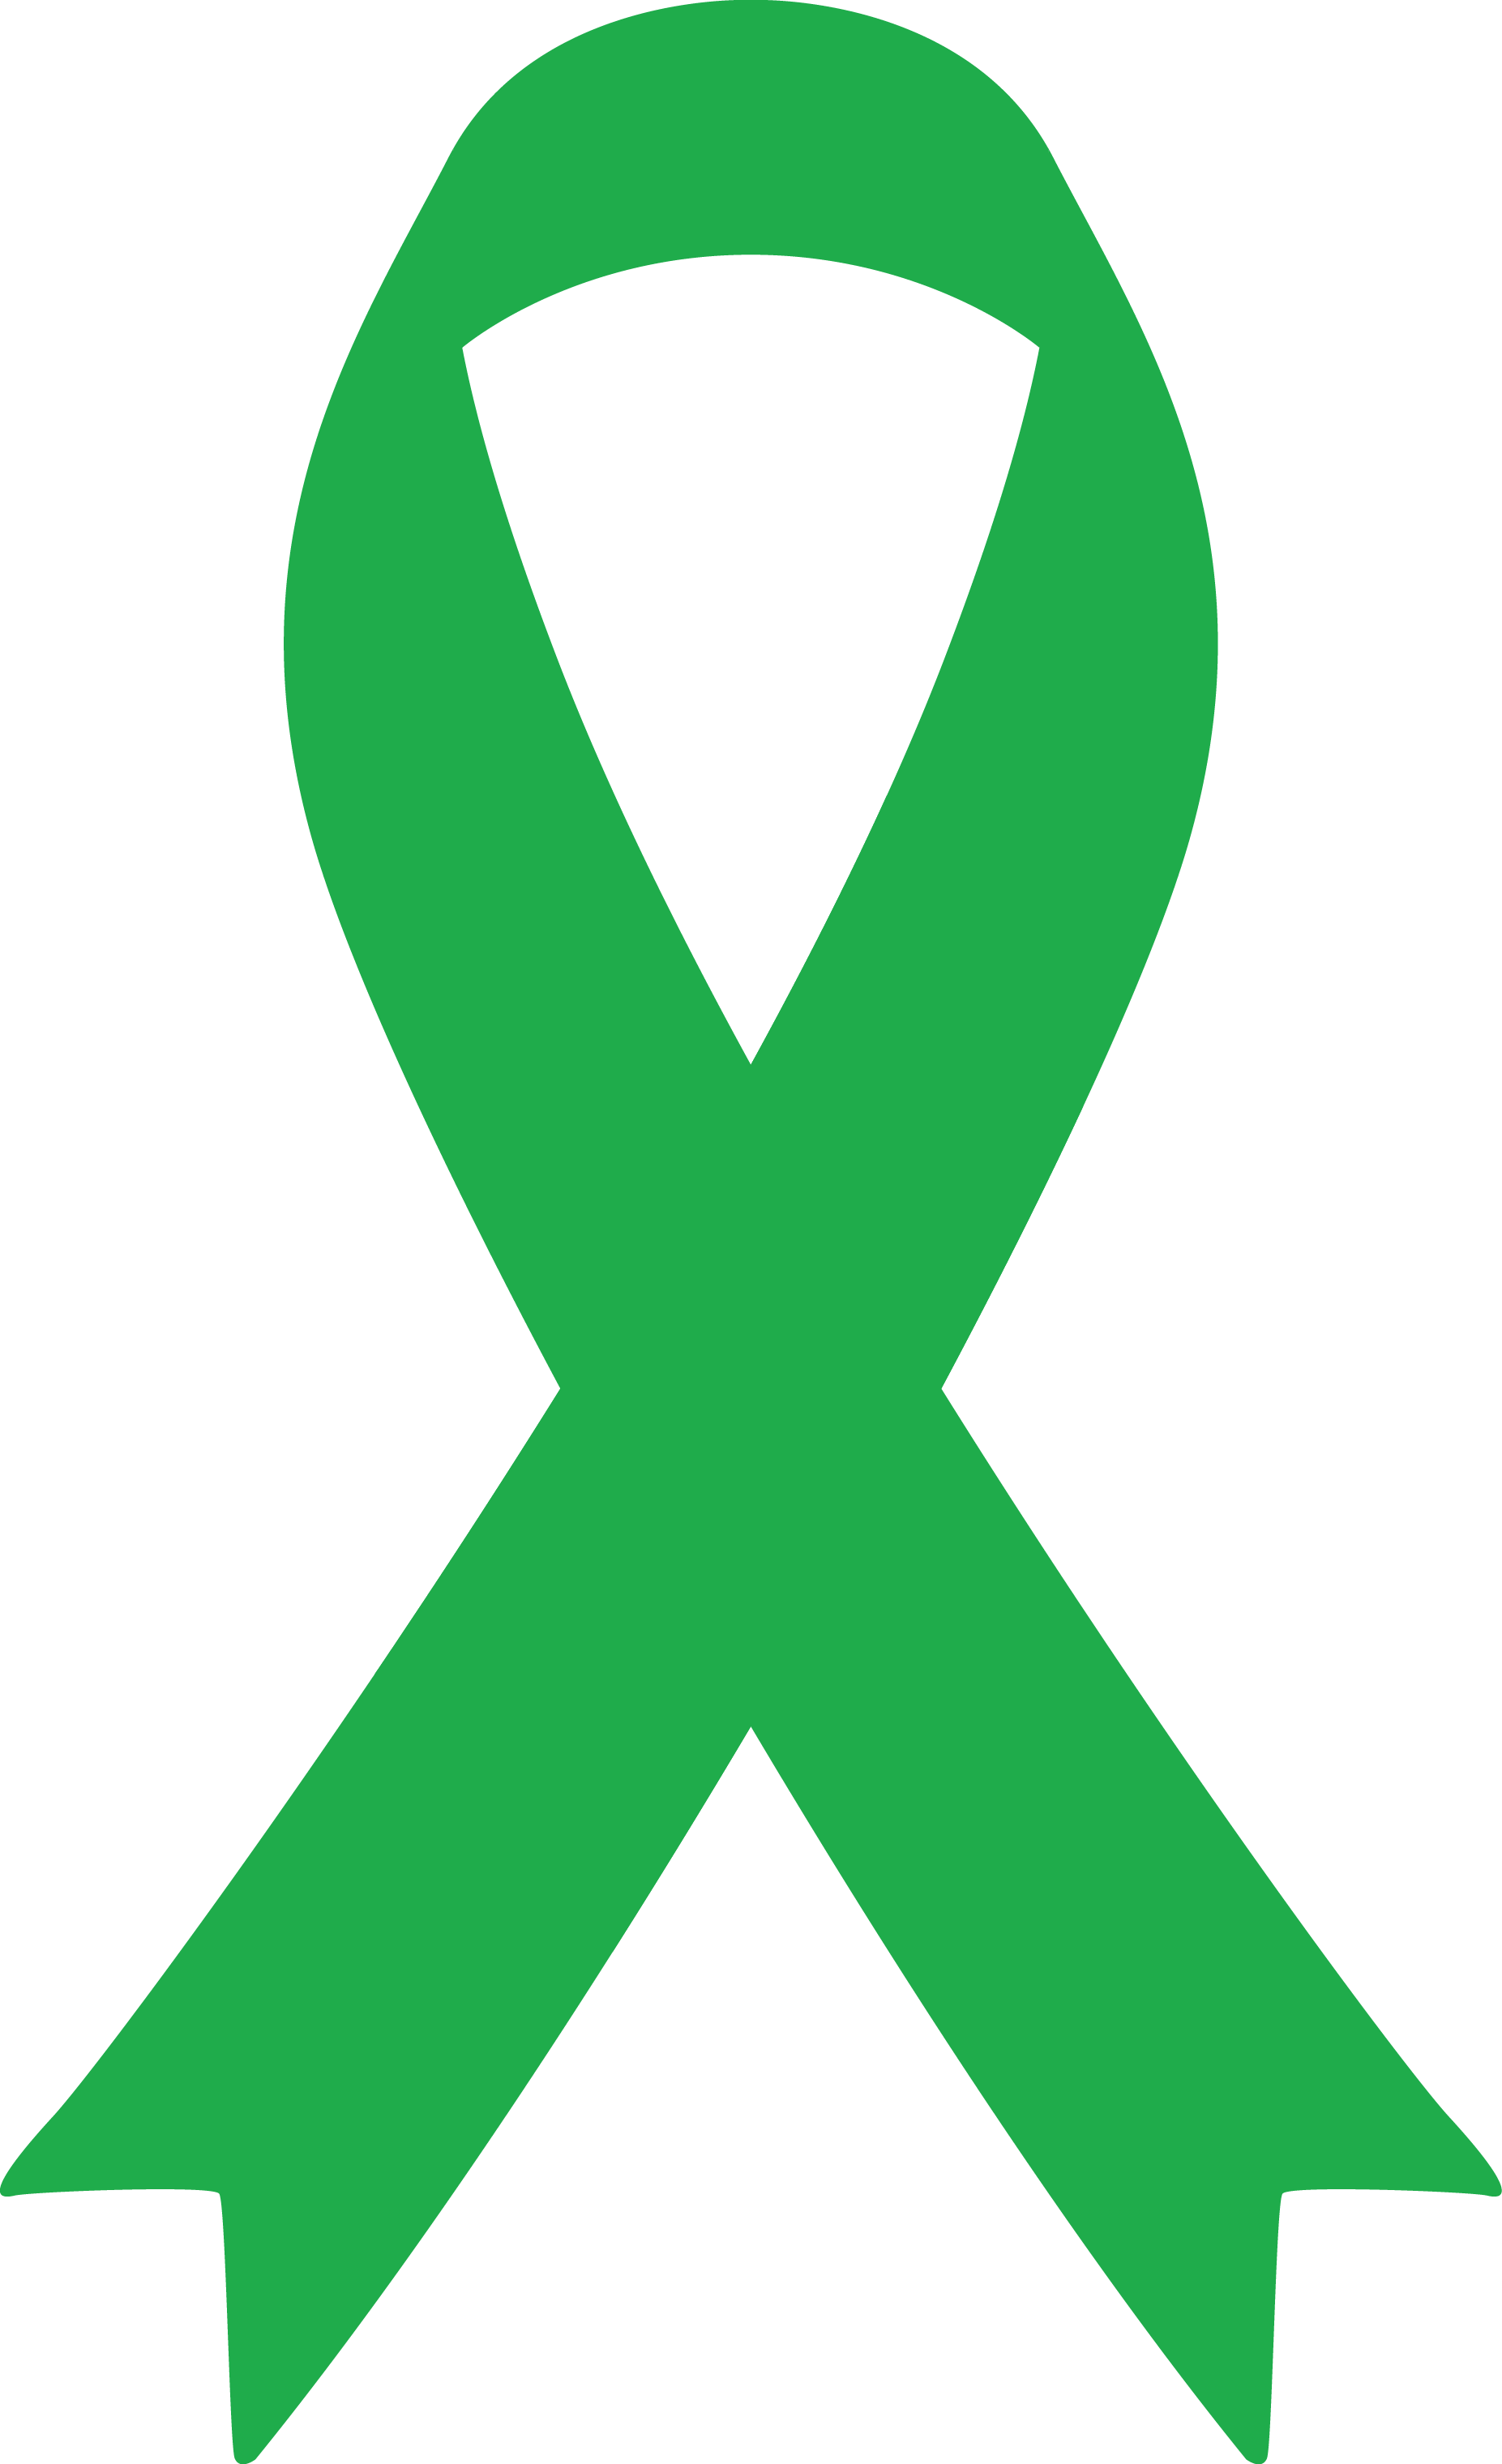 Mental Health Clipart Green Awareness Ribbon.